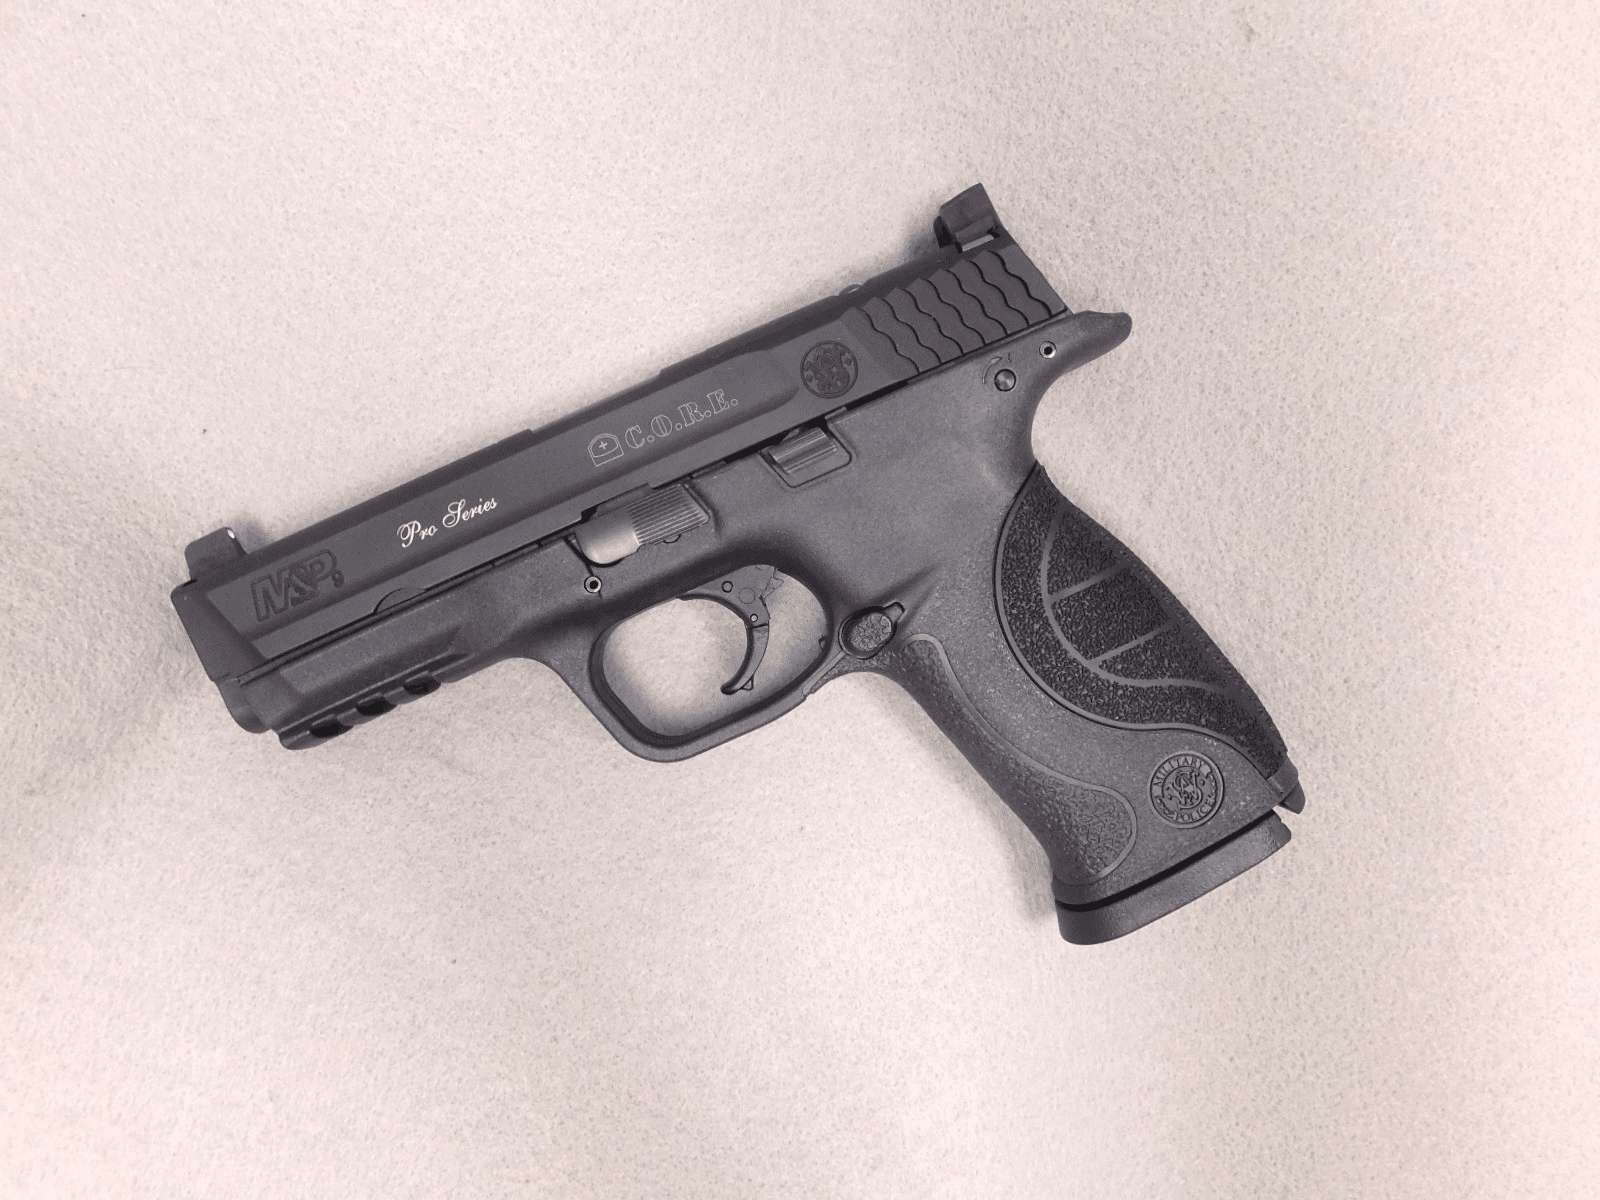 Smith & Wesson M&P 9 Pro Series (9mm)